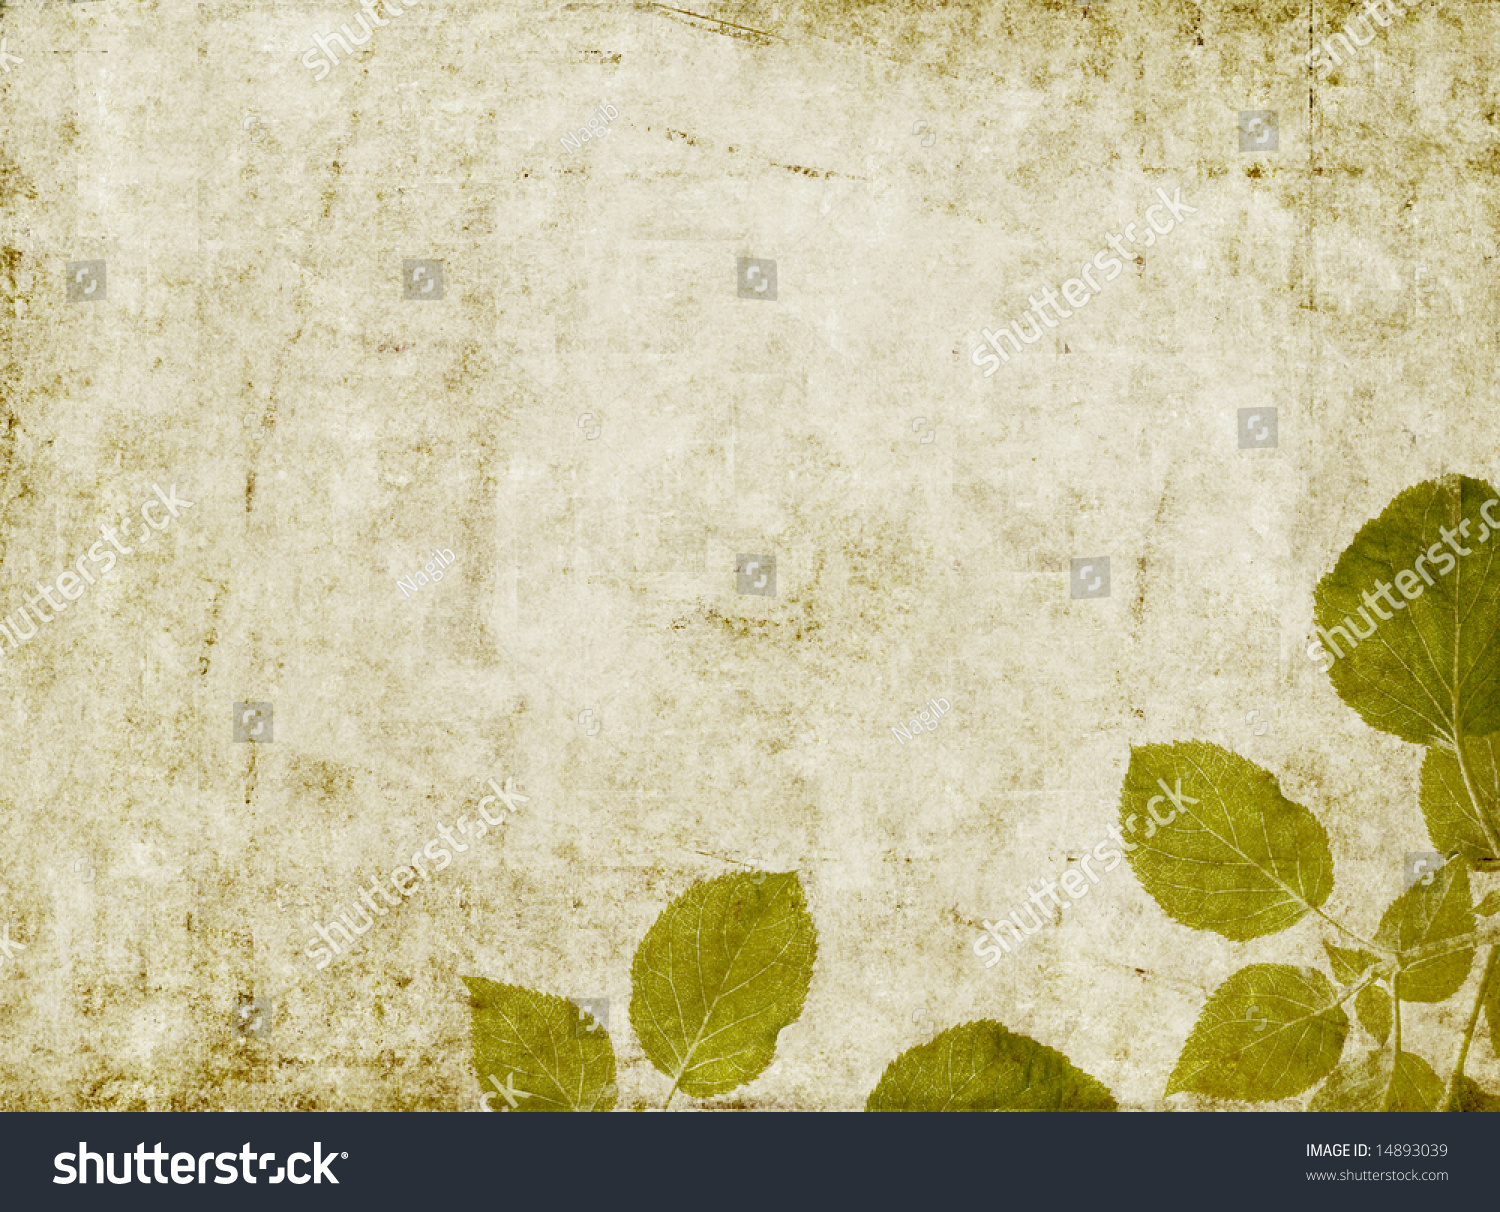 Lovely Brown Background Image With Interesting Earthy ... - photo#43